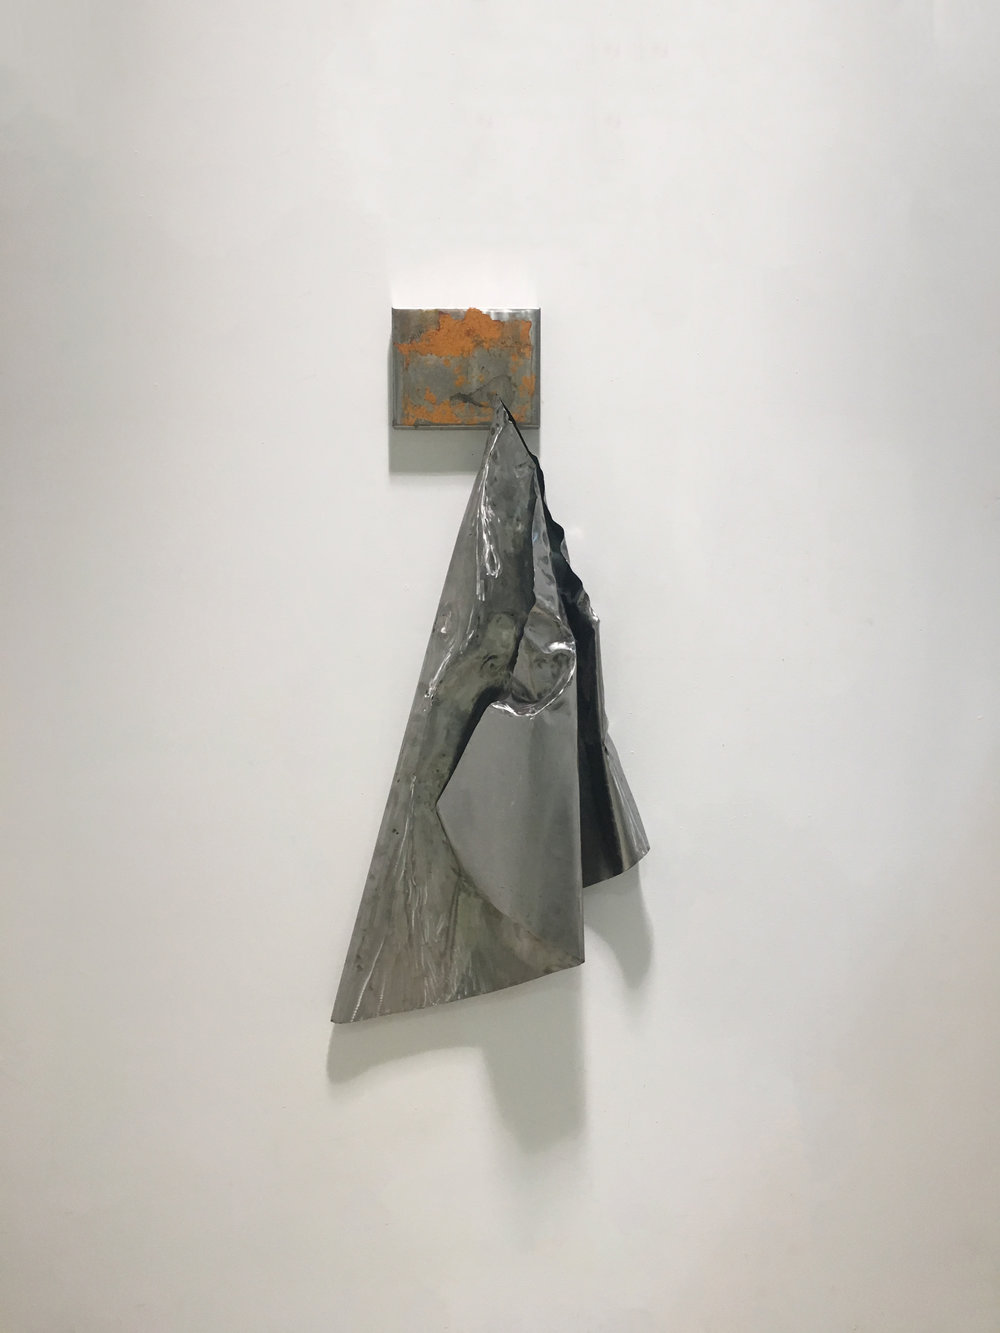 62*24*4in  March, 2018  Metal